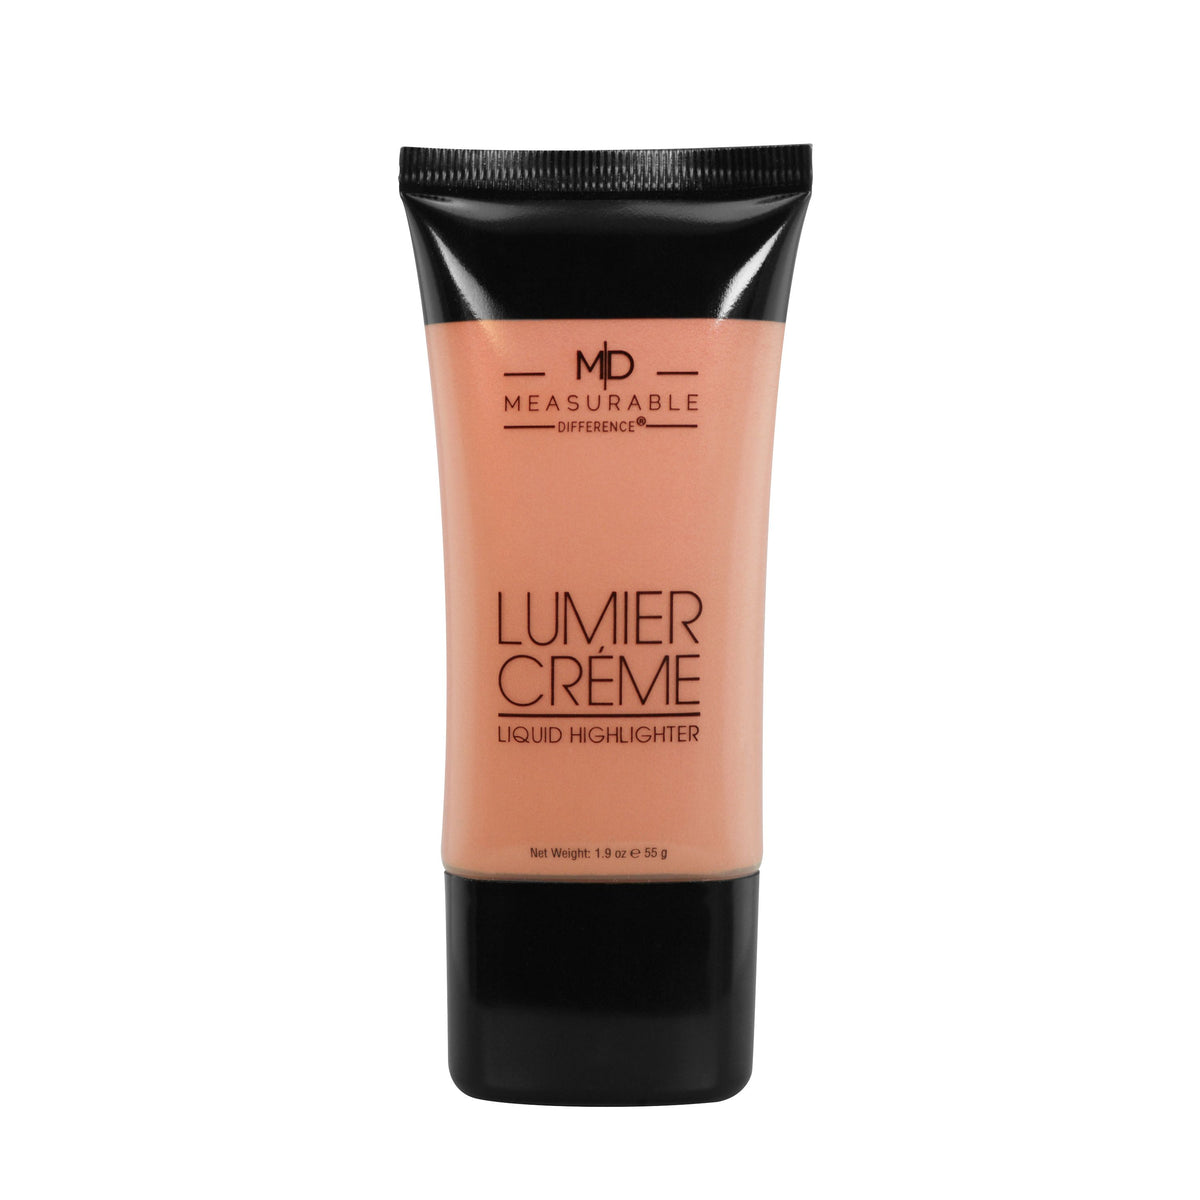 MD Lumier Creme Liquid Highlighter - Peach